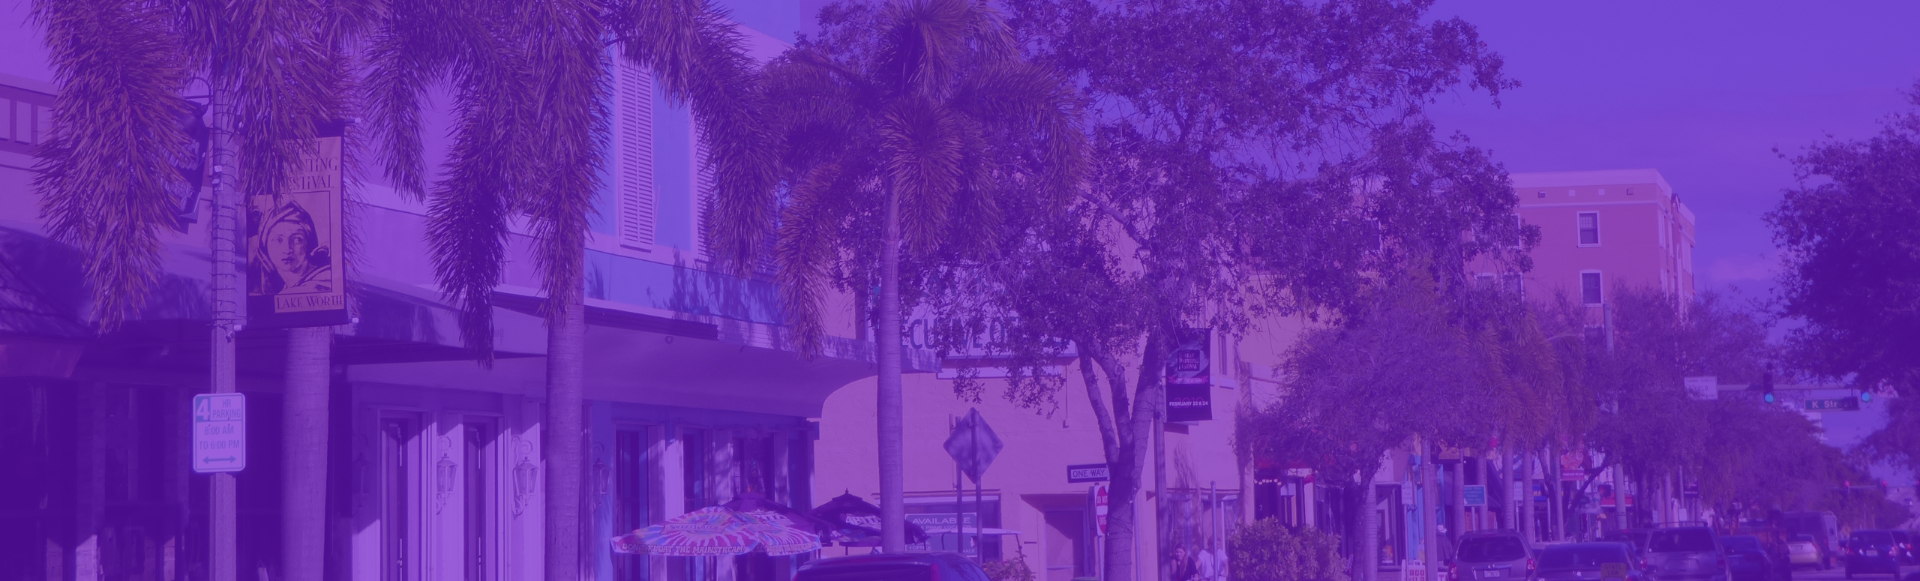 Image of Lake worth Down town with purple gradient